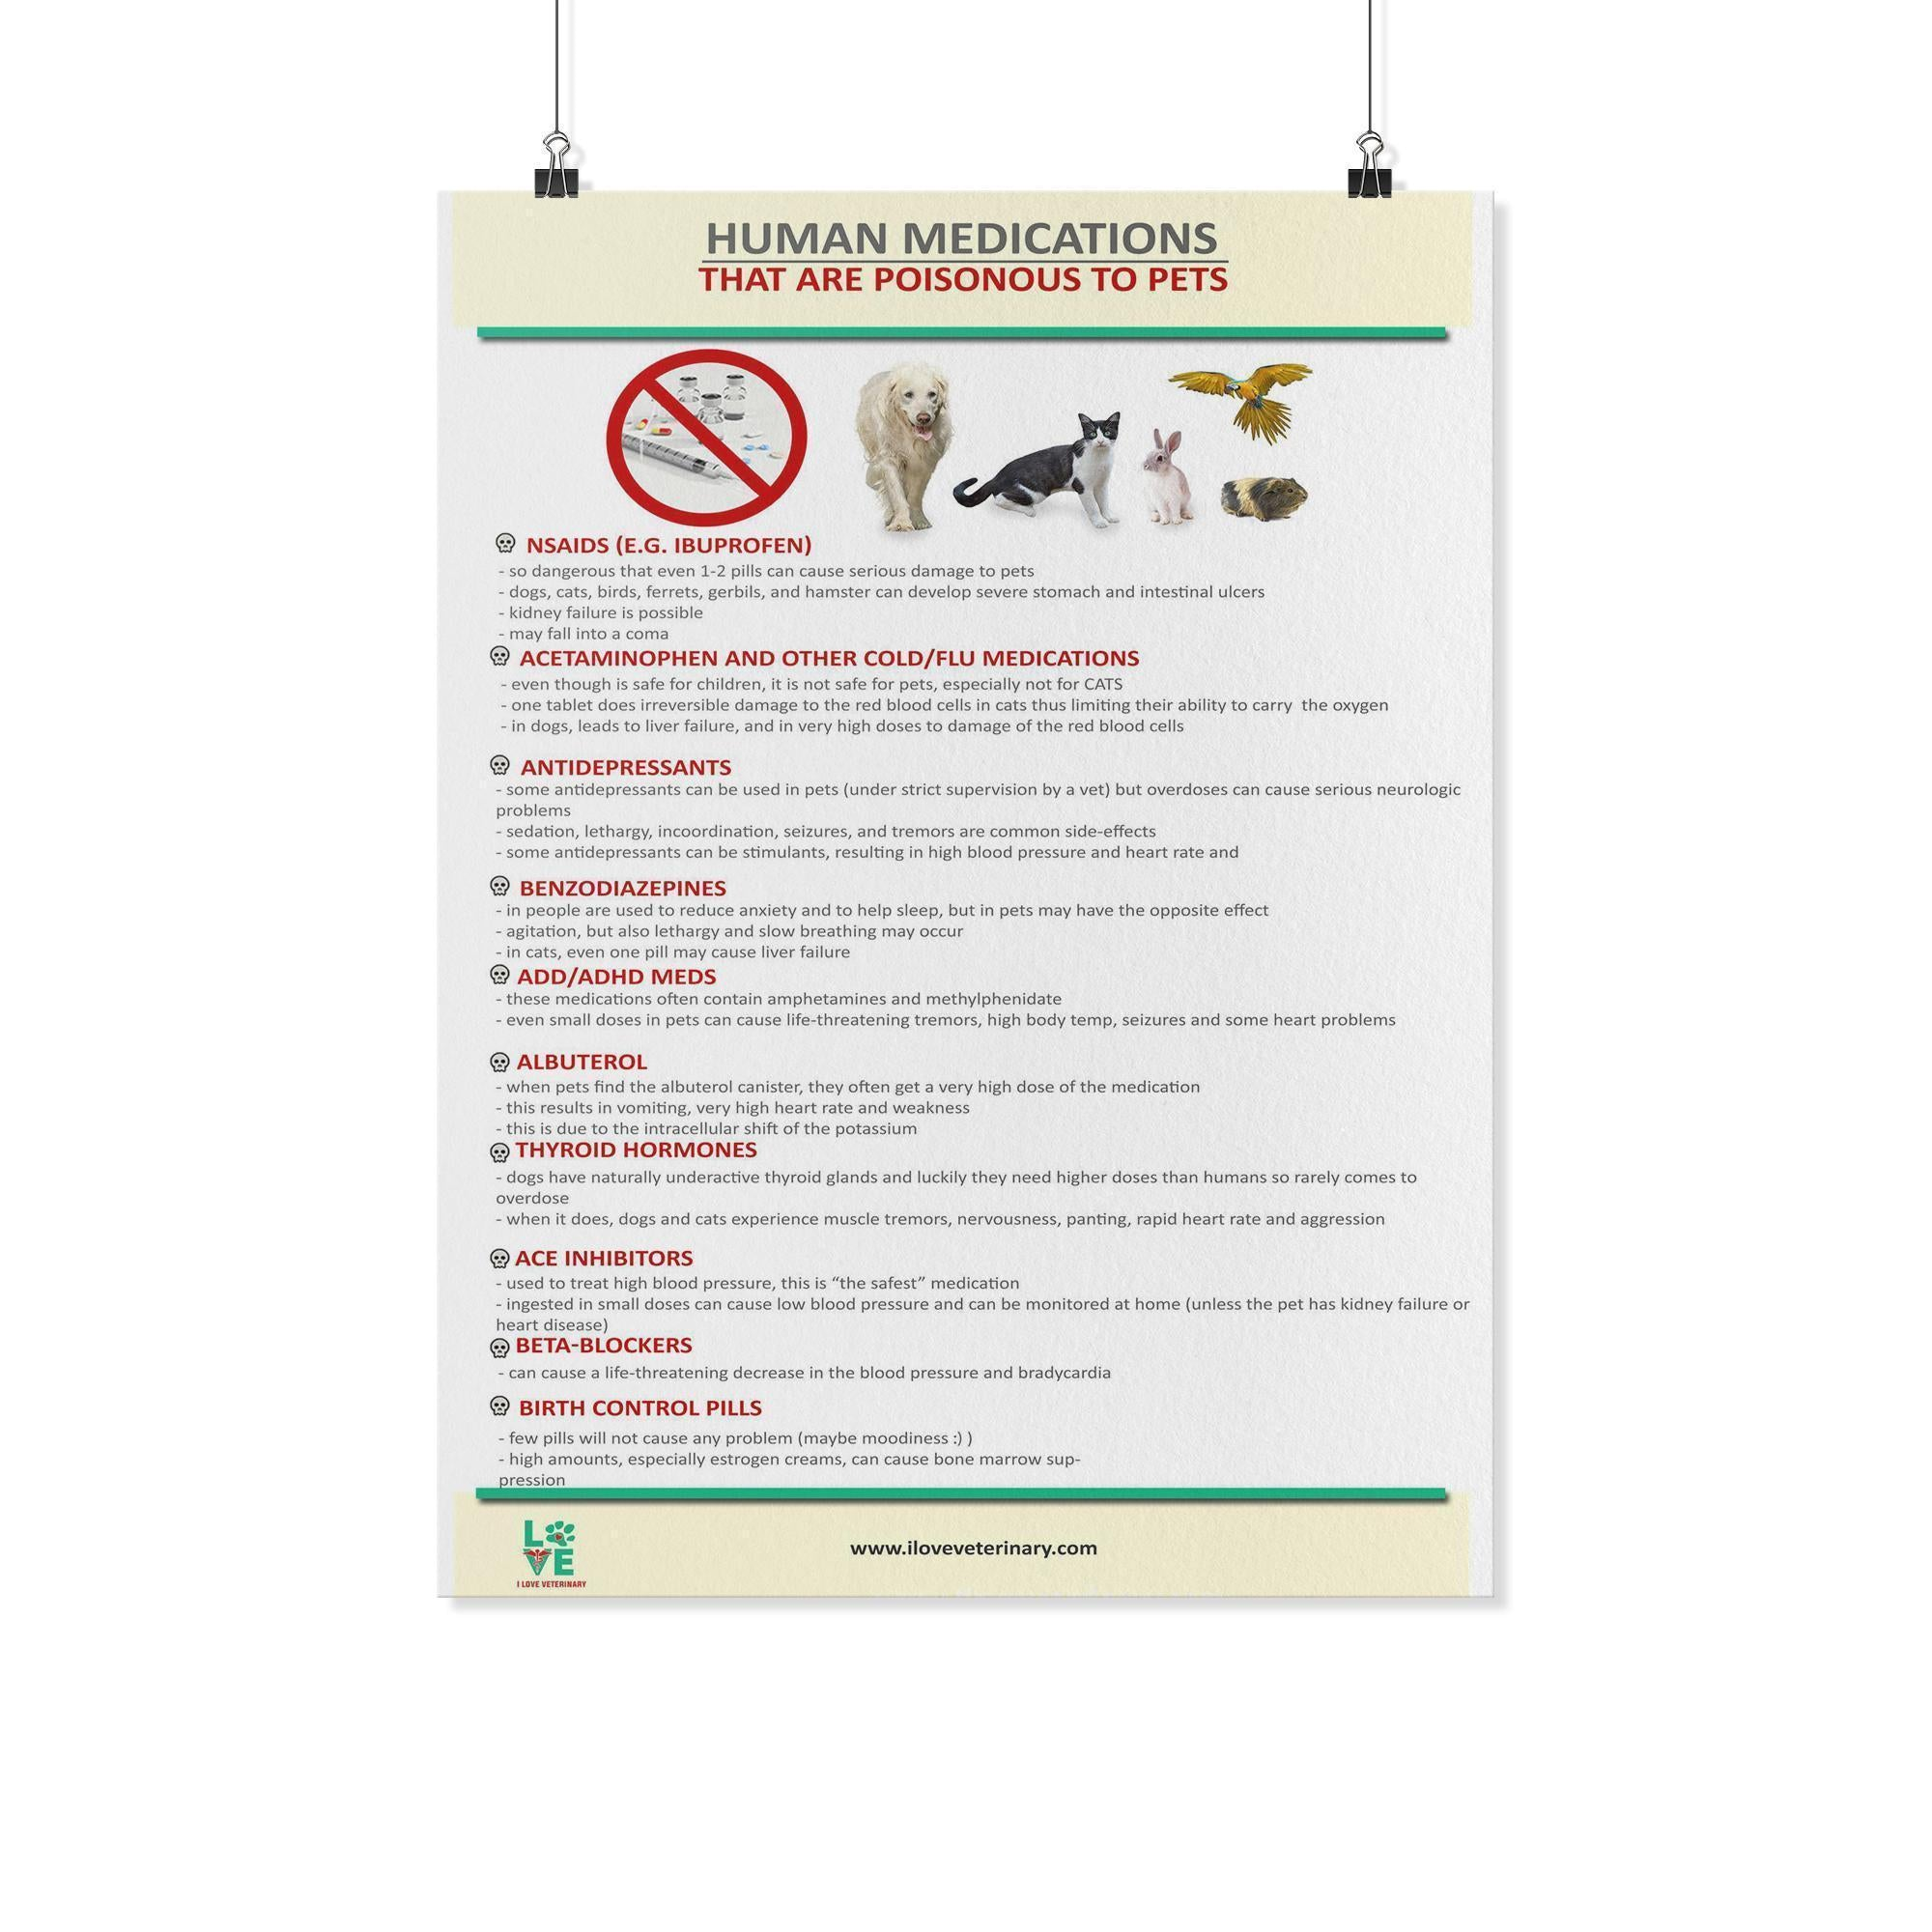 Human Medications that are Poisonous to Pets Poster